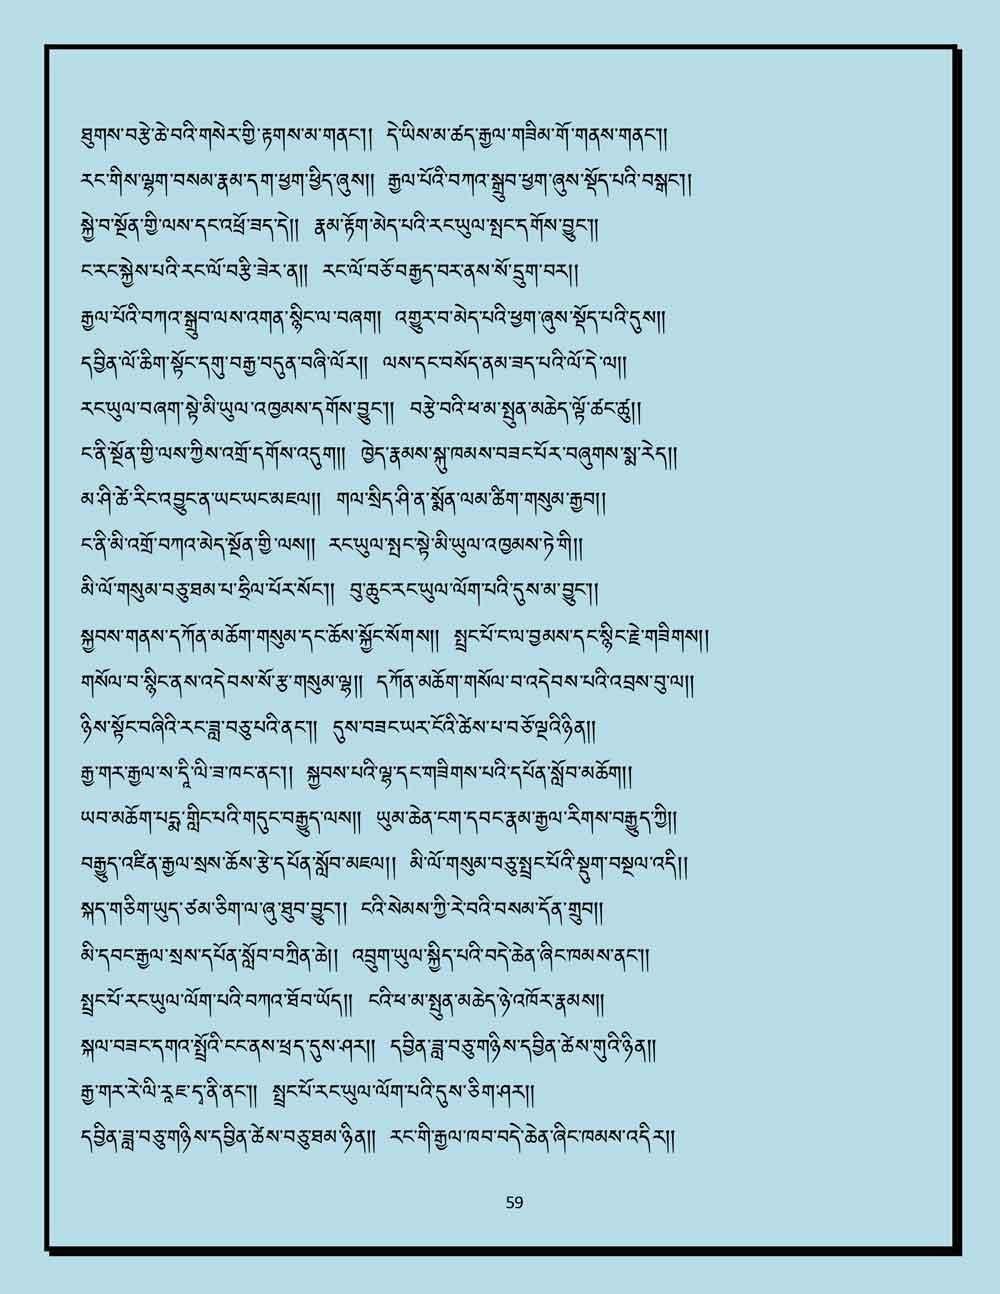 Ap-Tseten-Lyrics-59.jpg